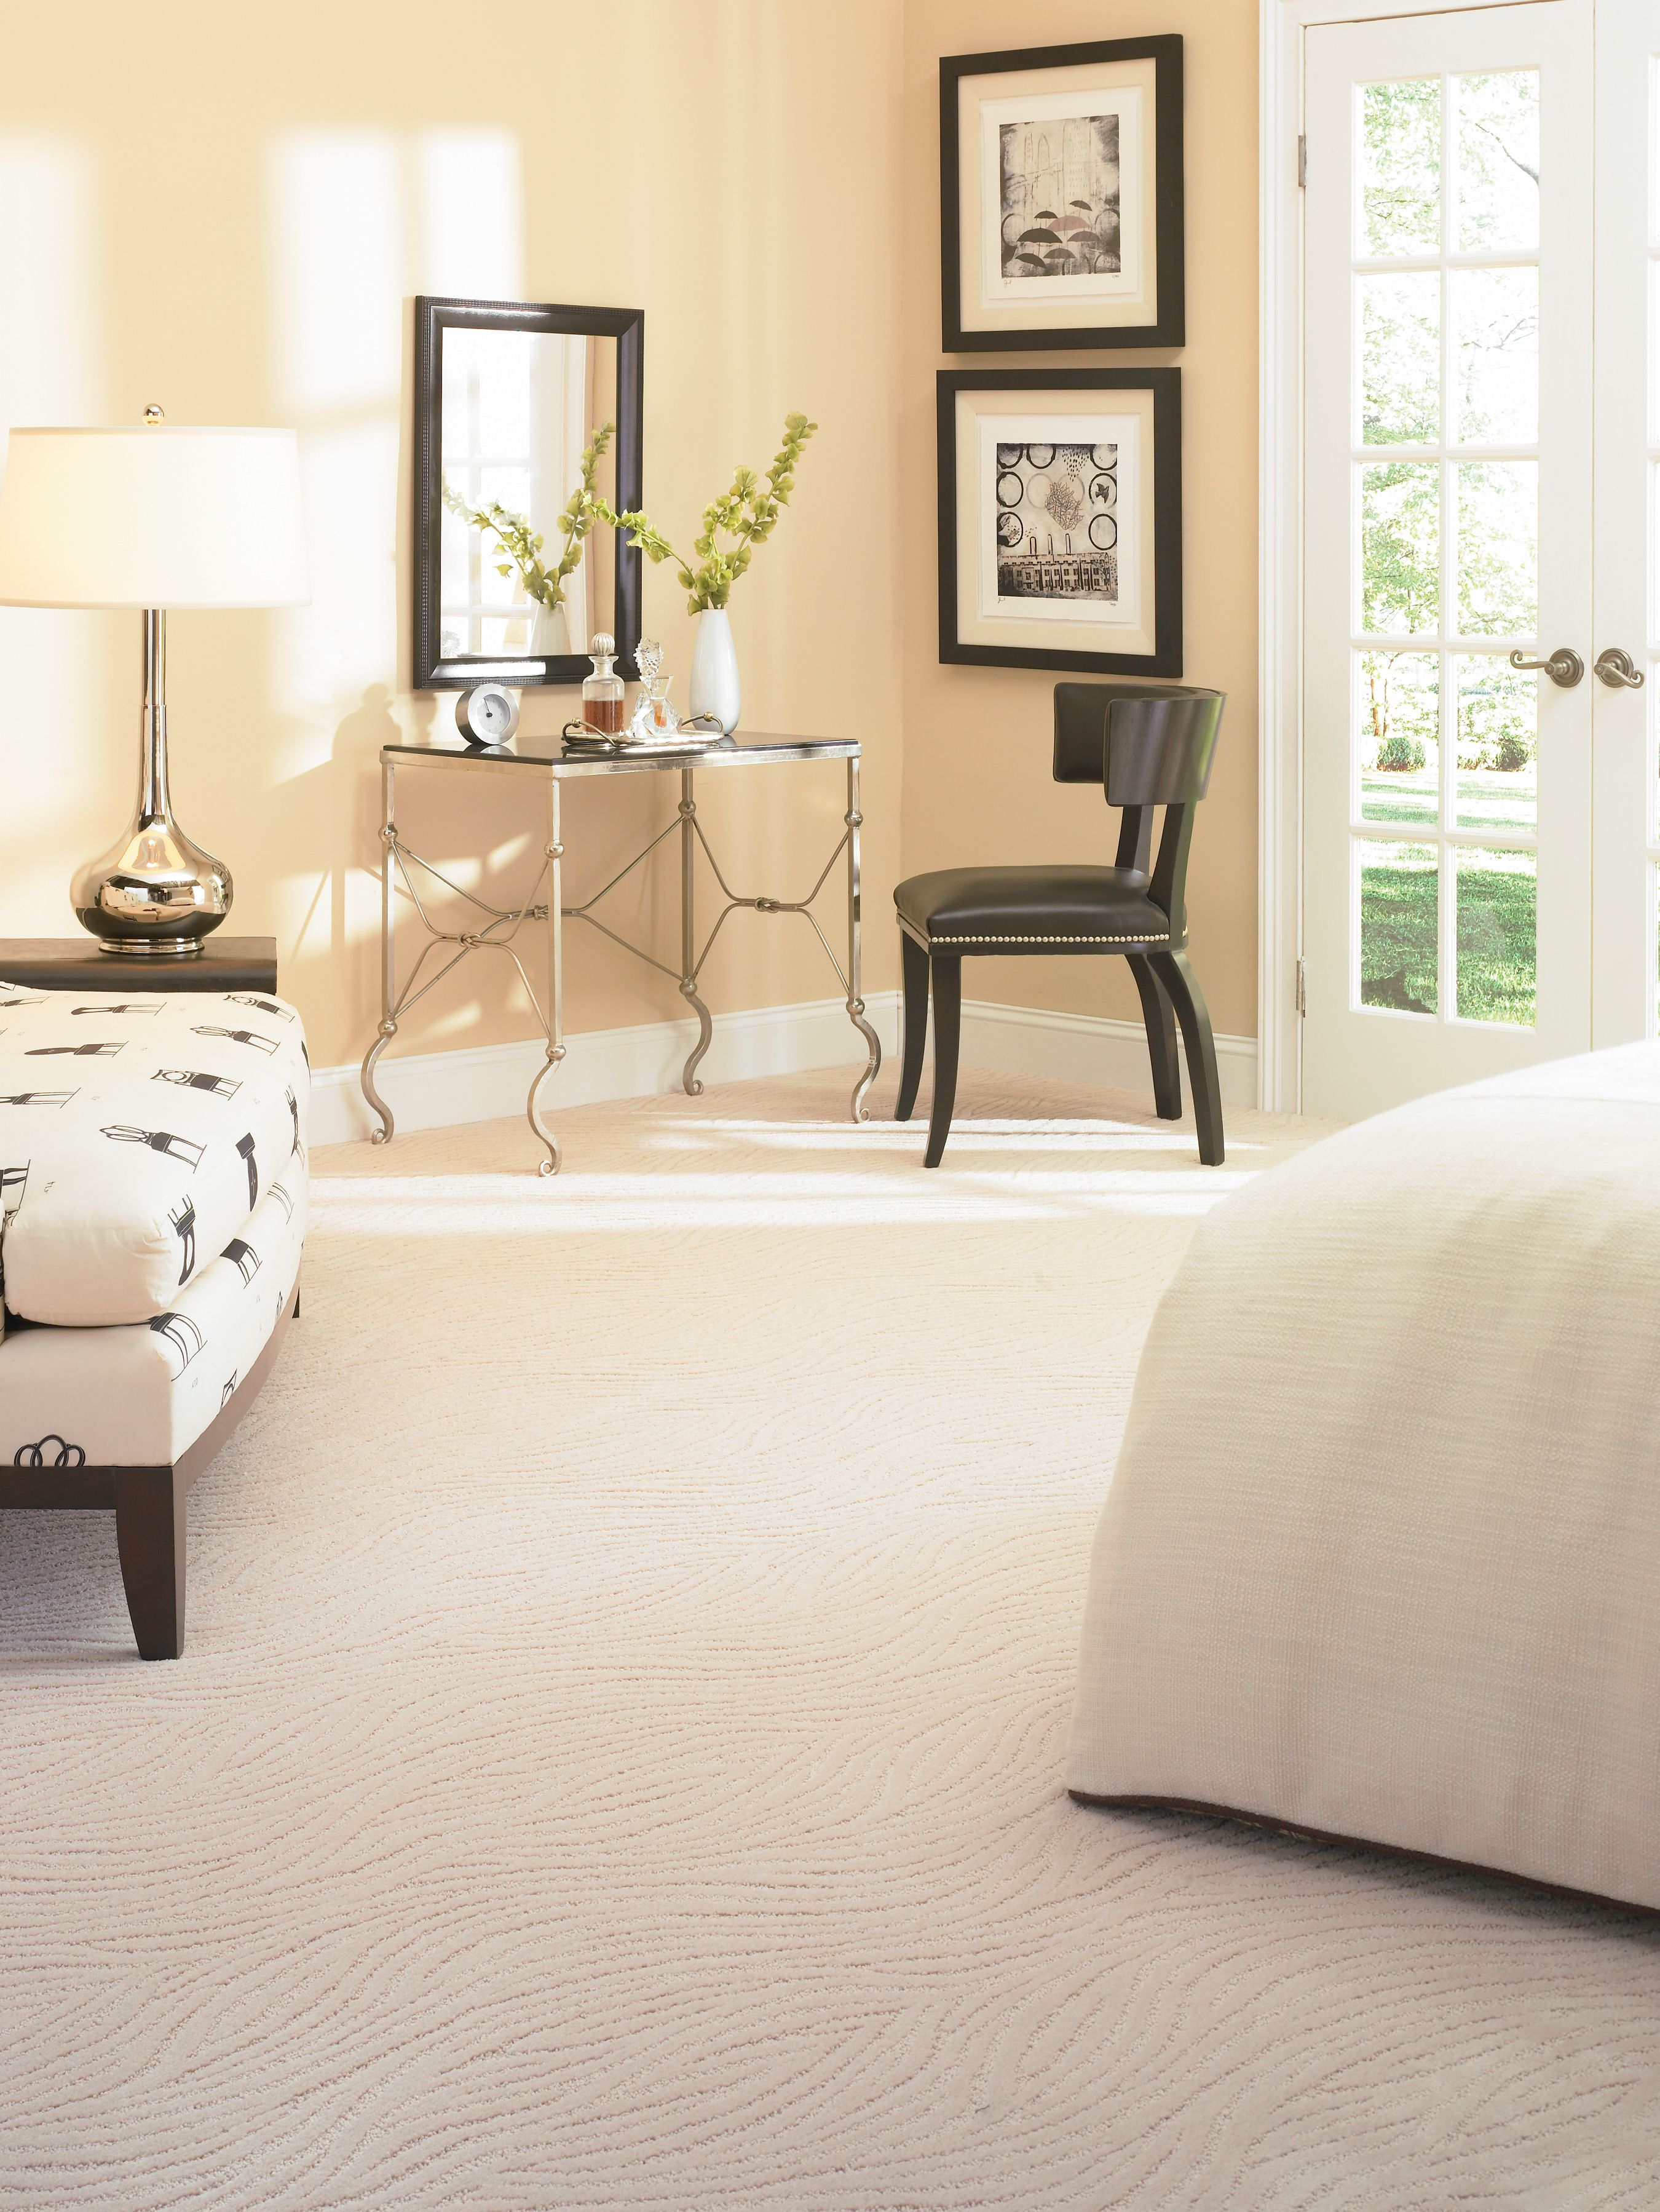 Dramatic Flair Get Inspired By This Mohawk Smartstrand Carpet Dive Into The Design Elements With Luxurious Floori Smartstrand Carpet Home Decor Carpet Pricing